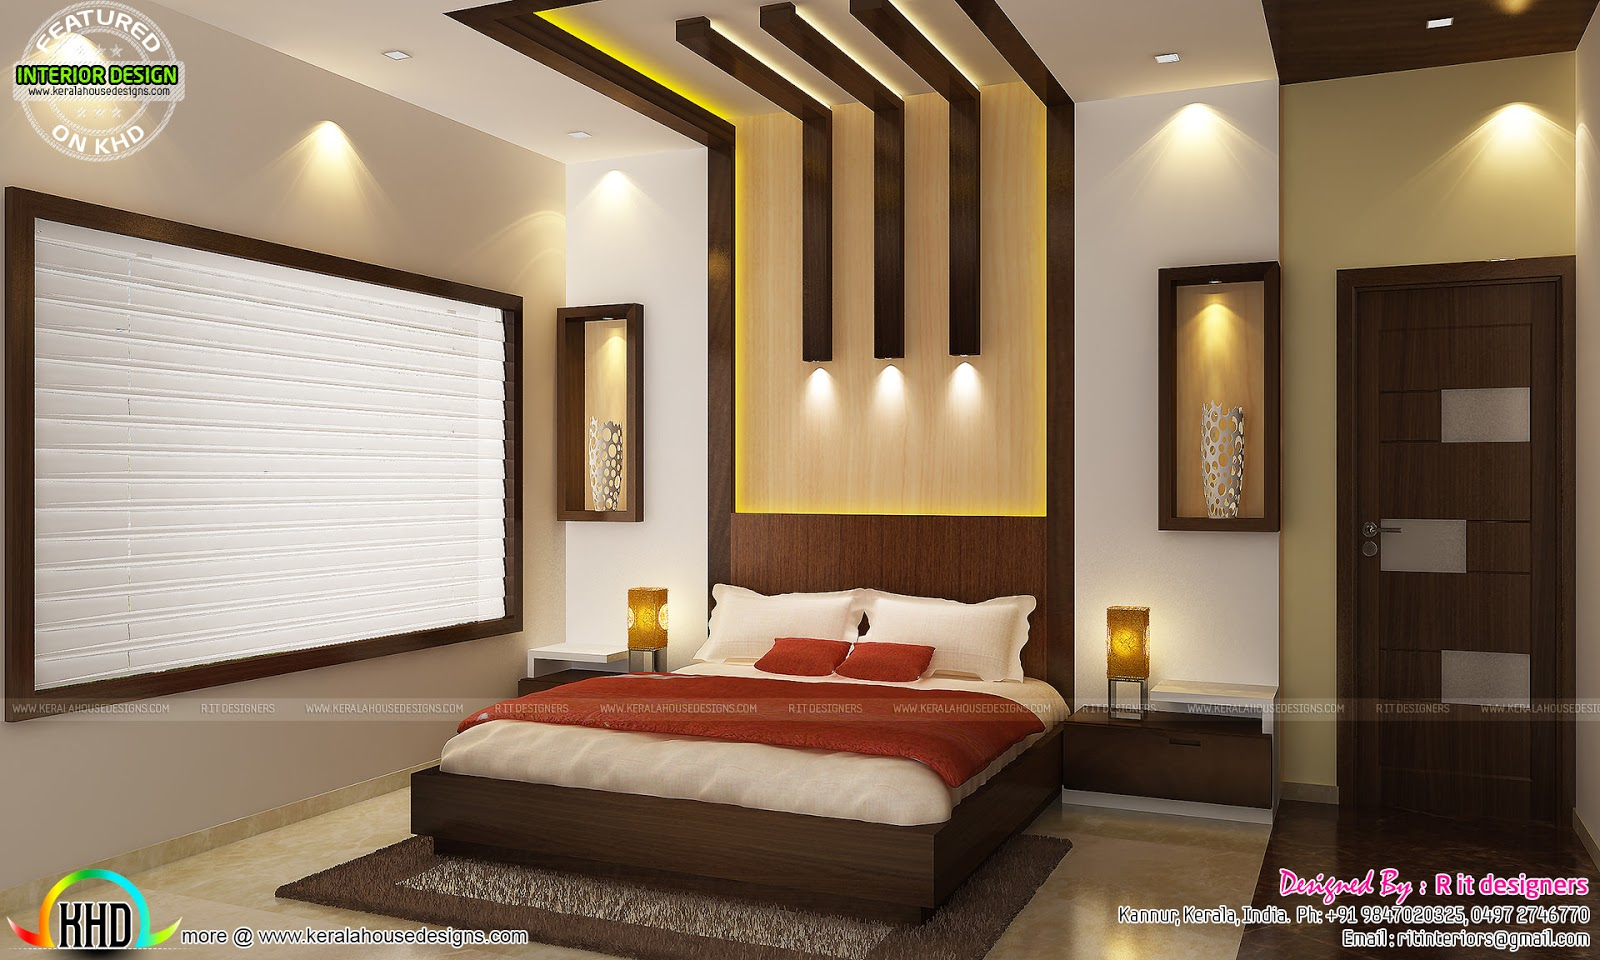 Kitchen living bedroom dining interior decor kerala for Bedroom designs interior